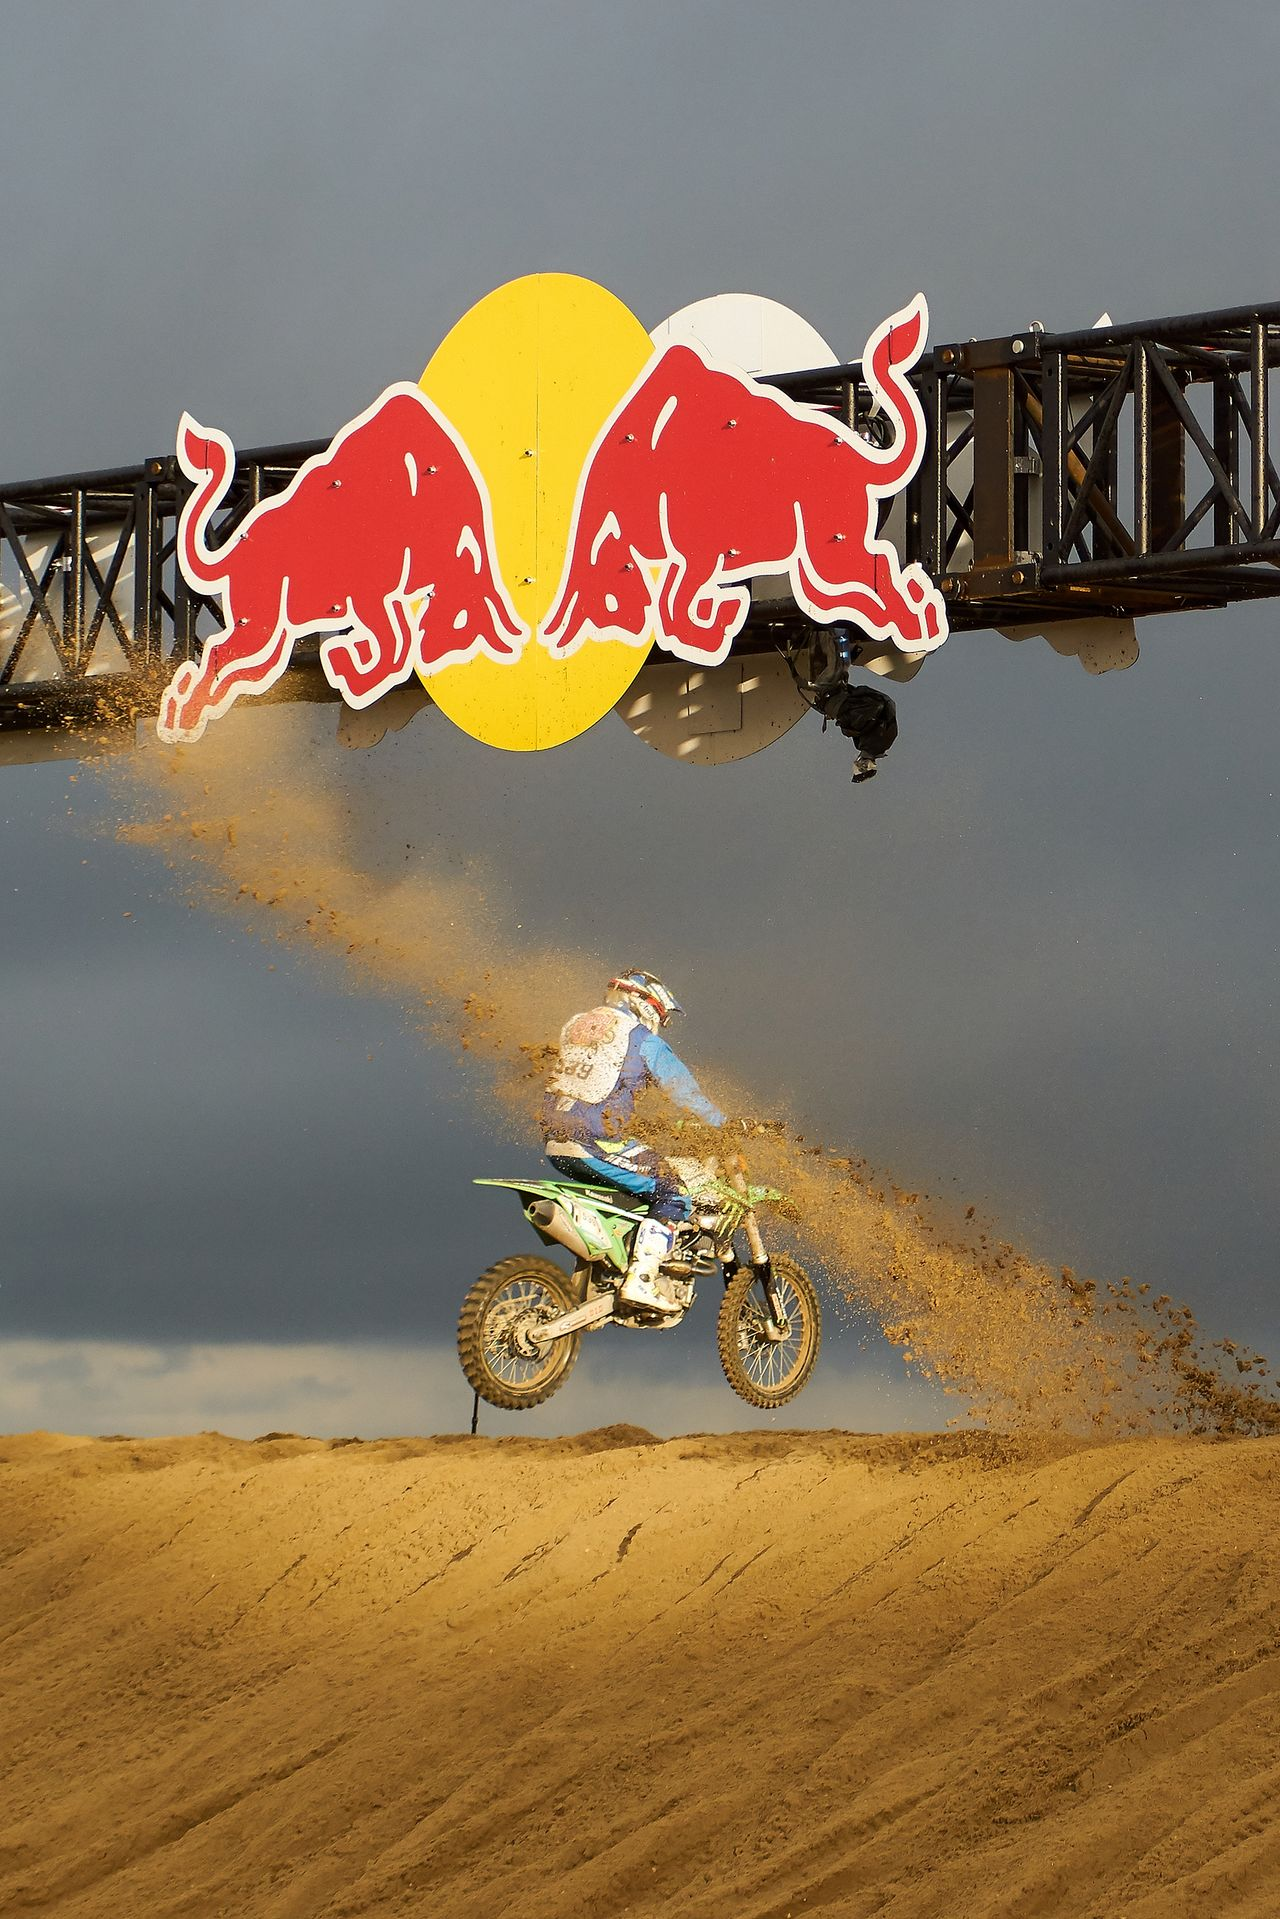 Sand Jump Beach Day Motorcycles Outdoors Race RedBull RedbullEvents Sand Sand Dune